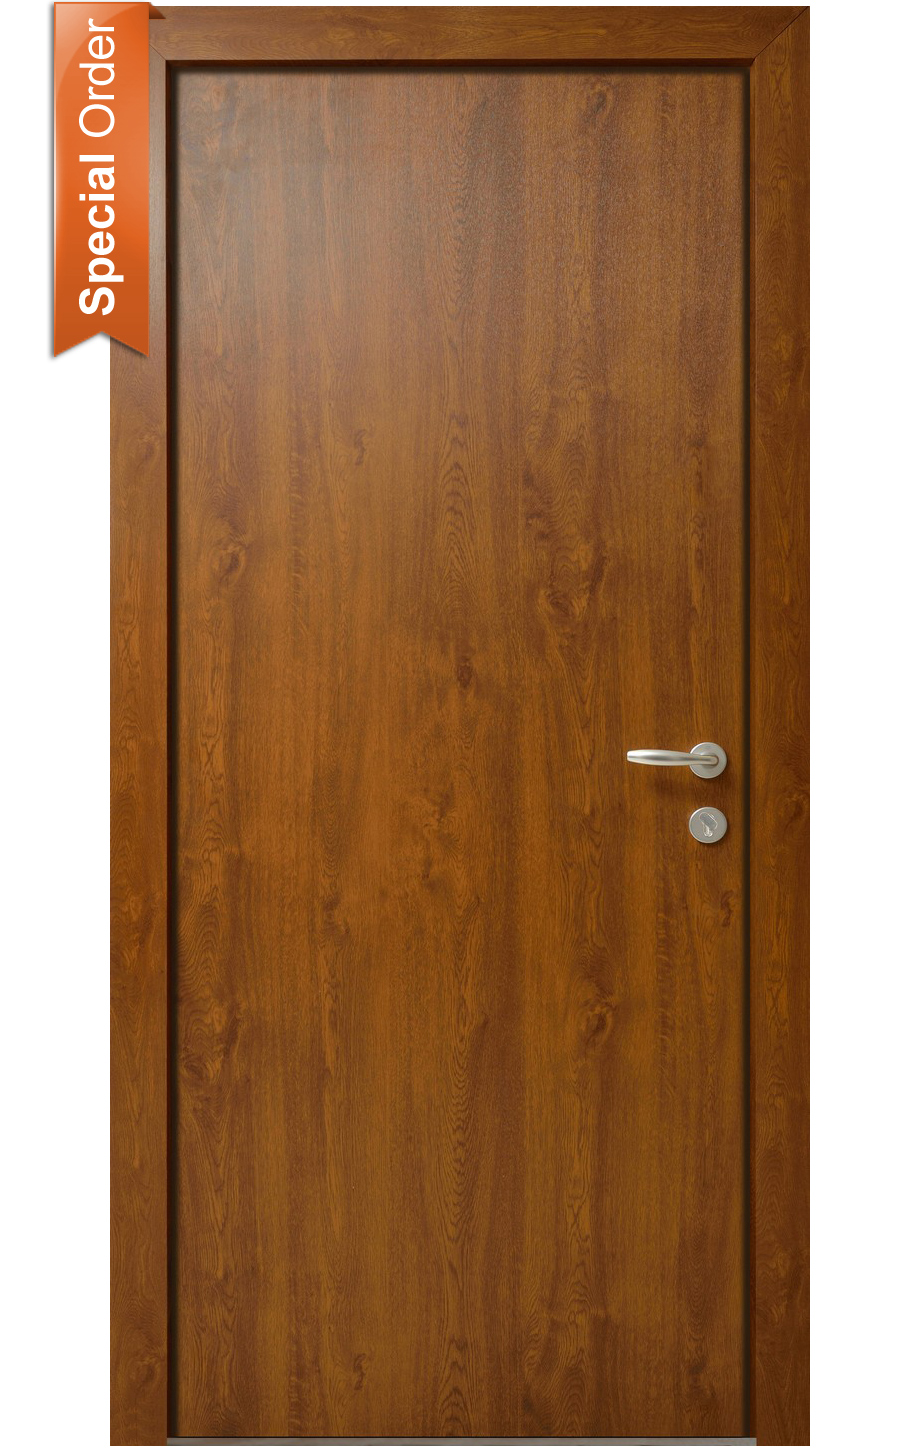 Buy North 70 Golden Oak Front Door At A Bargain Price From